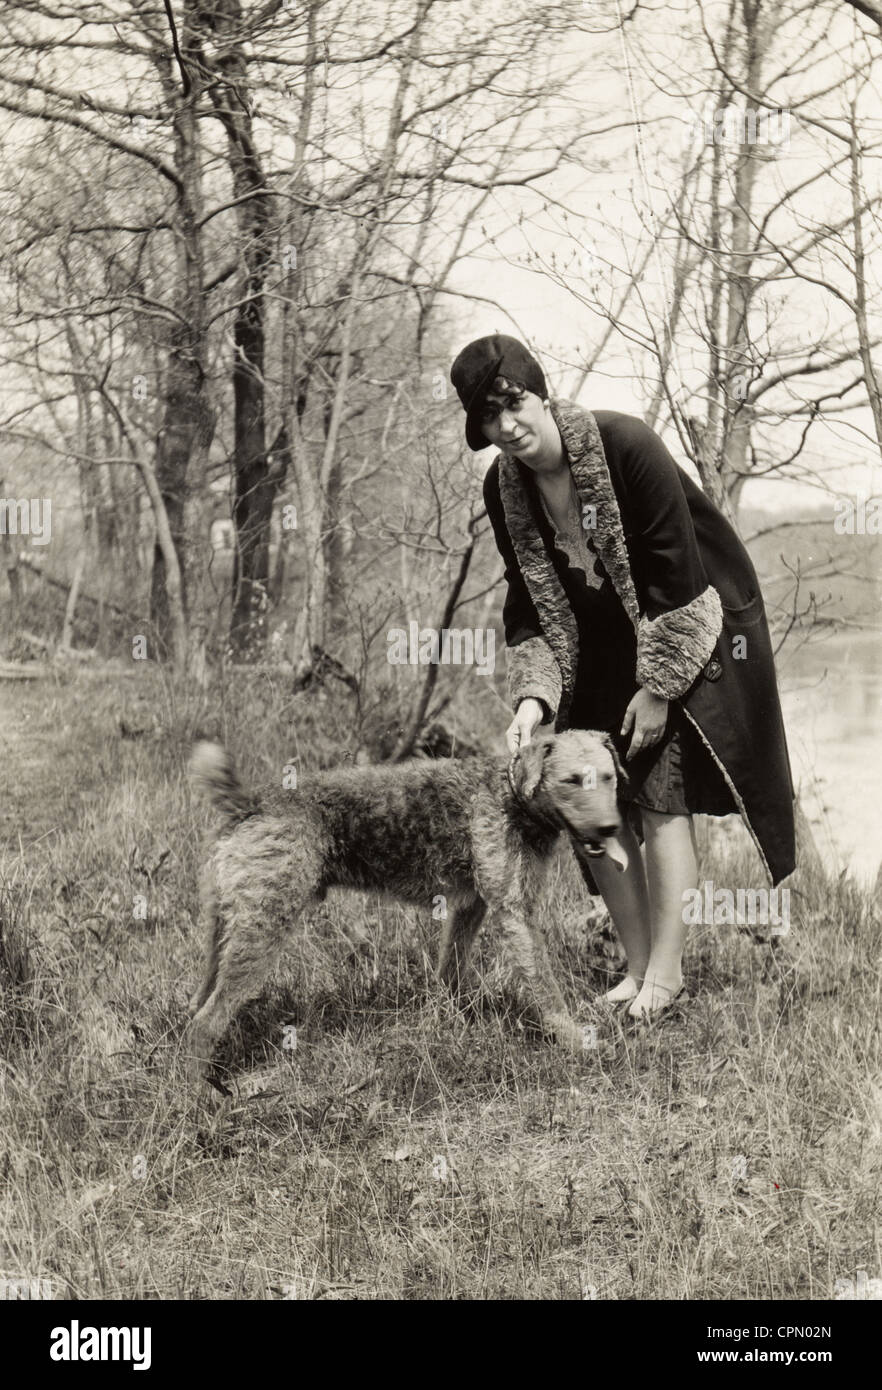 Woman & Look-Alike Airedale Terrier in the Woods - Stock Image